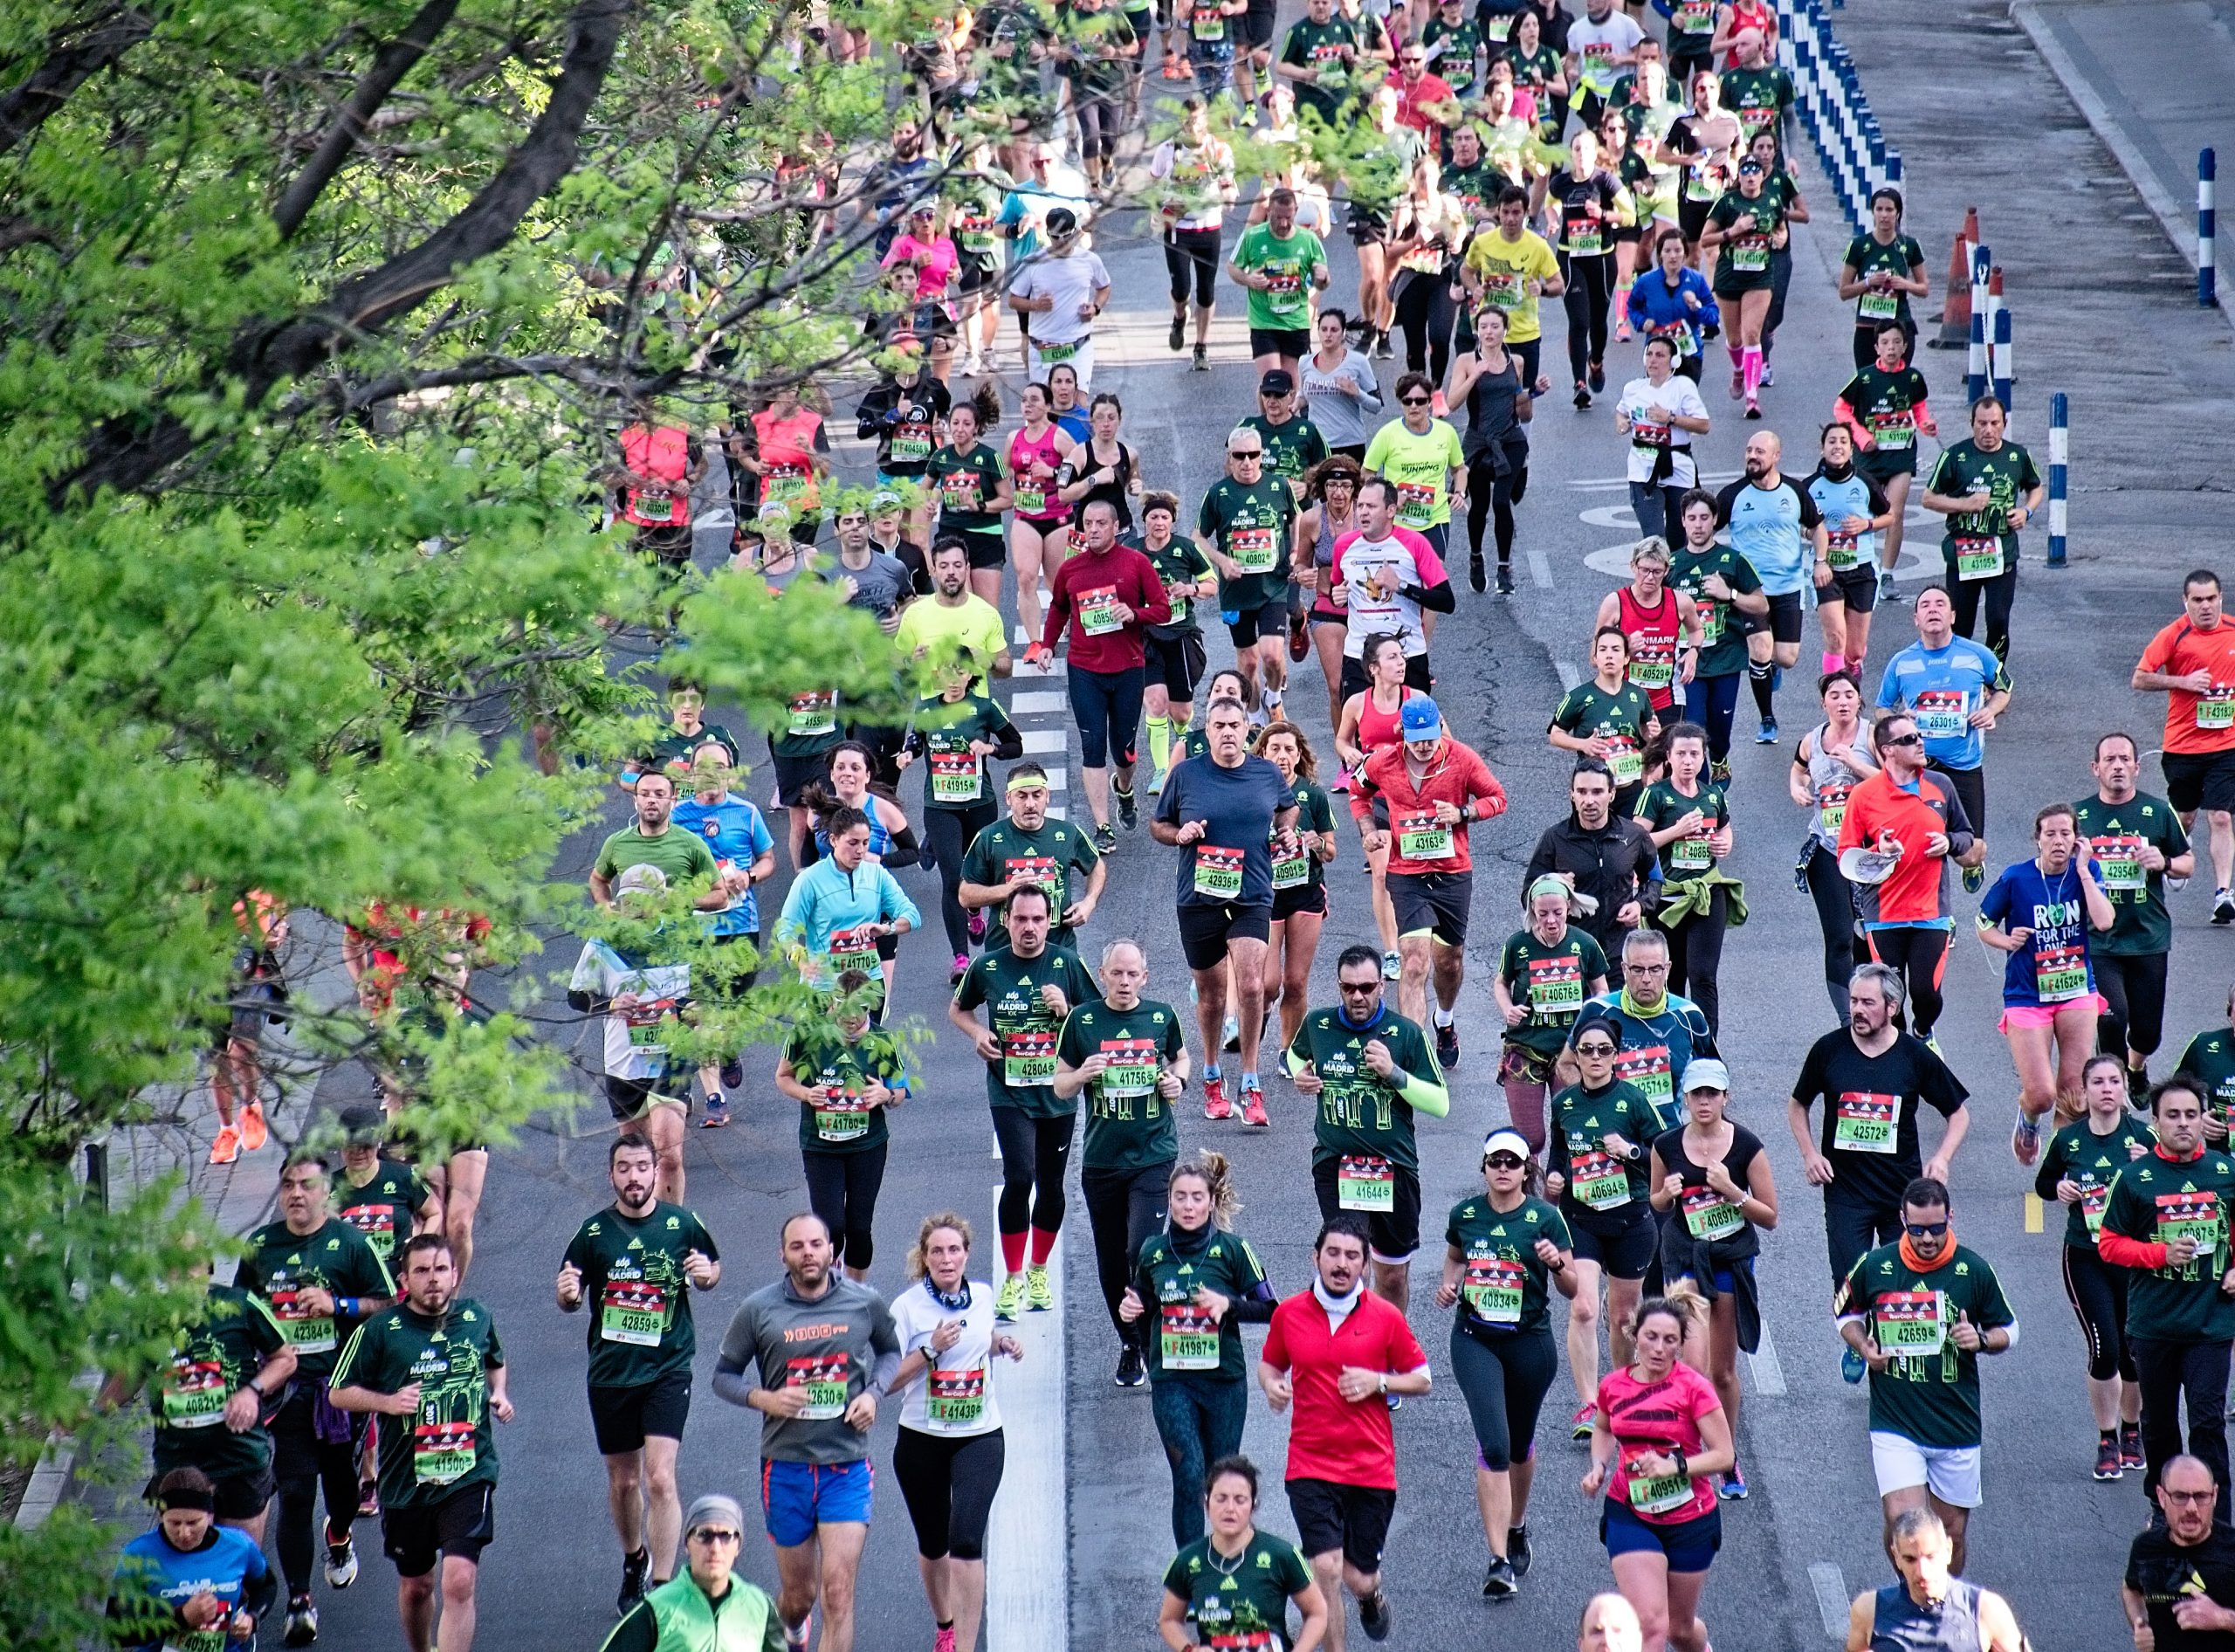 A birds eye view of people running down a road in a race